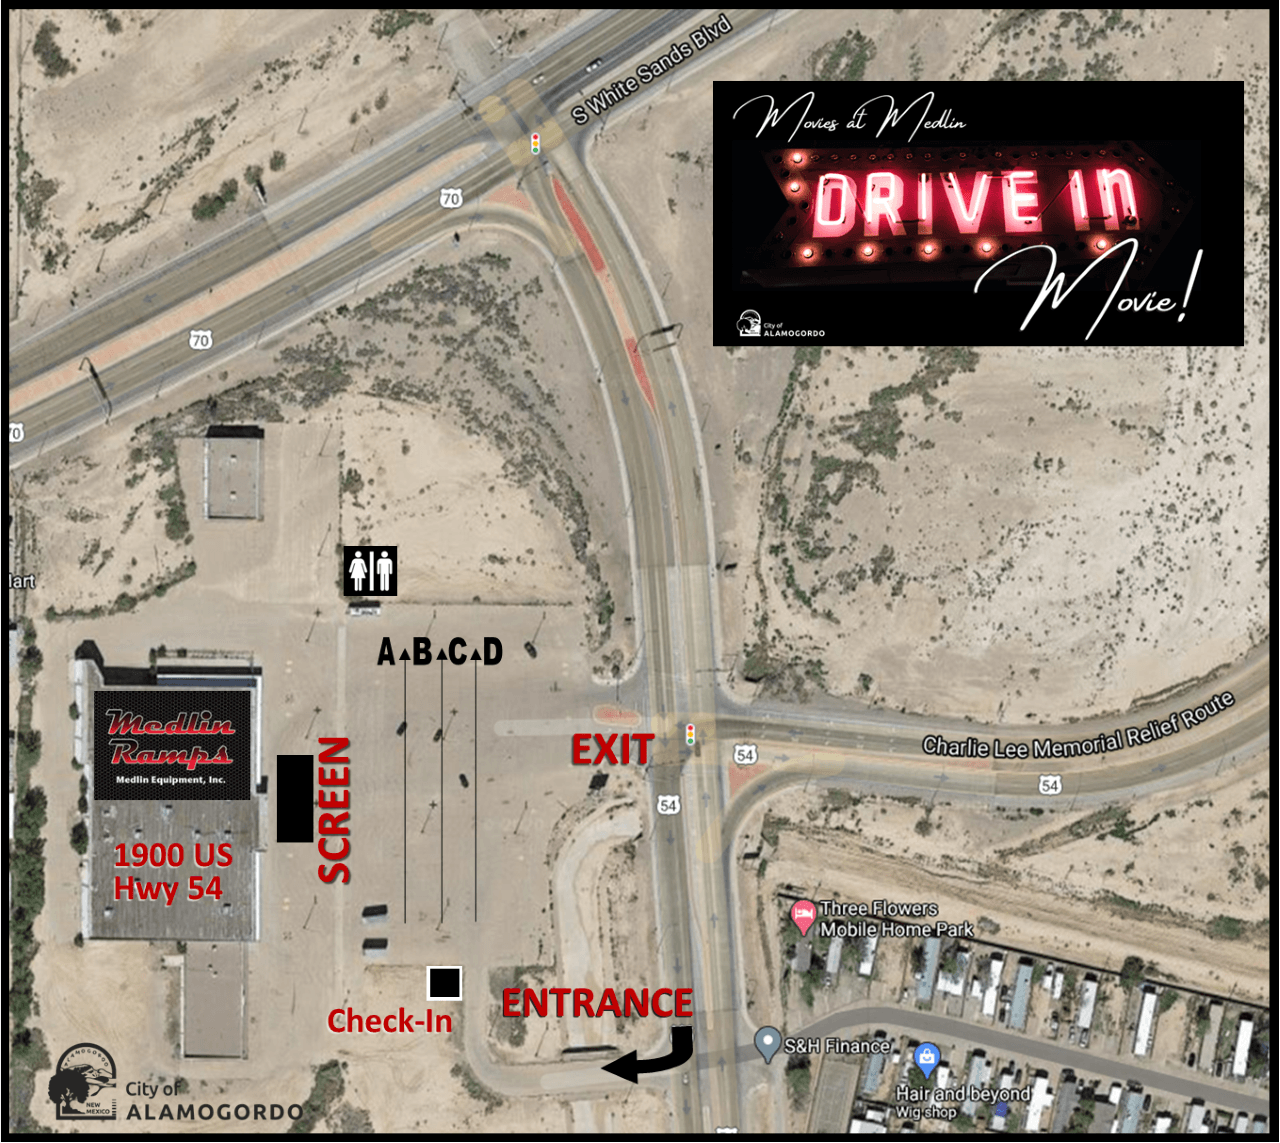 Movies at Medlin: Drive-in Movie Venue Map